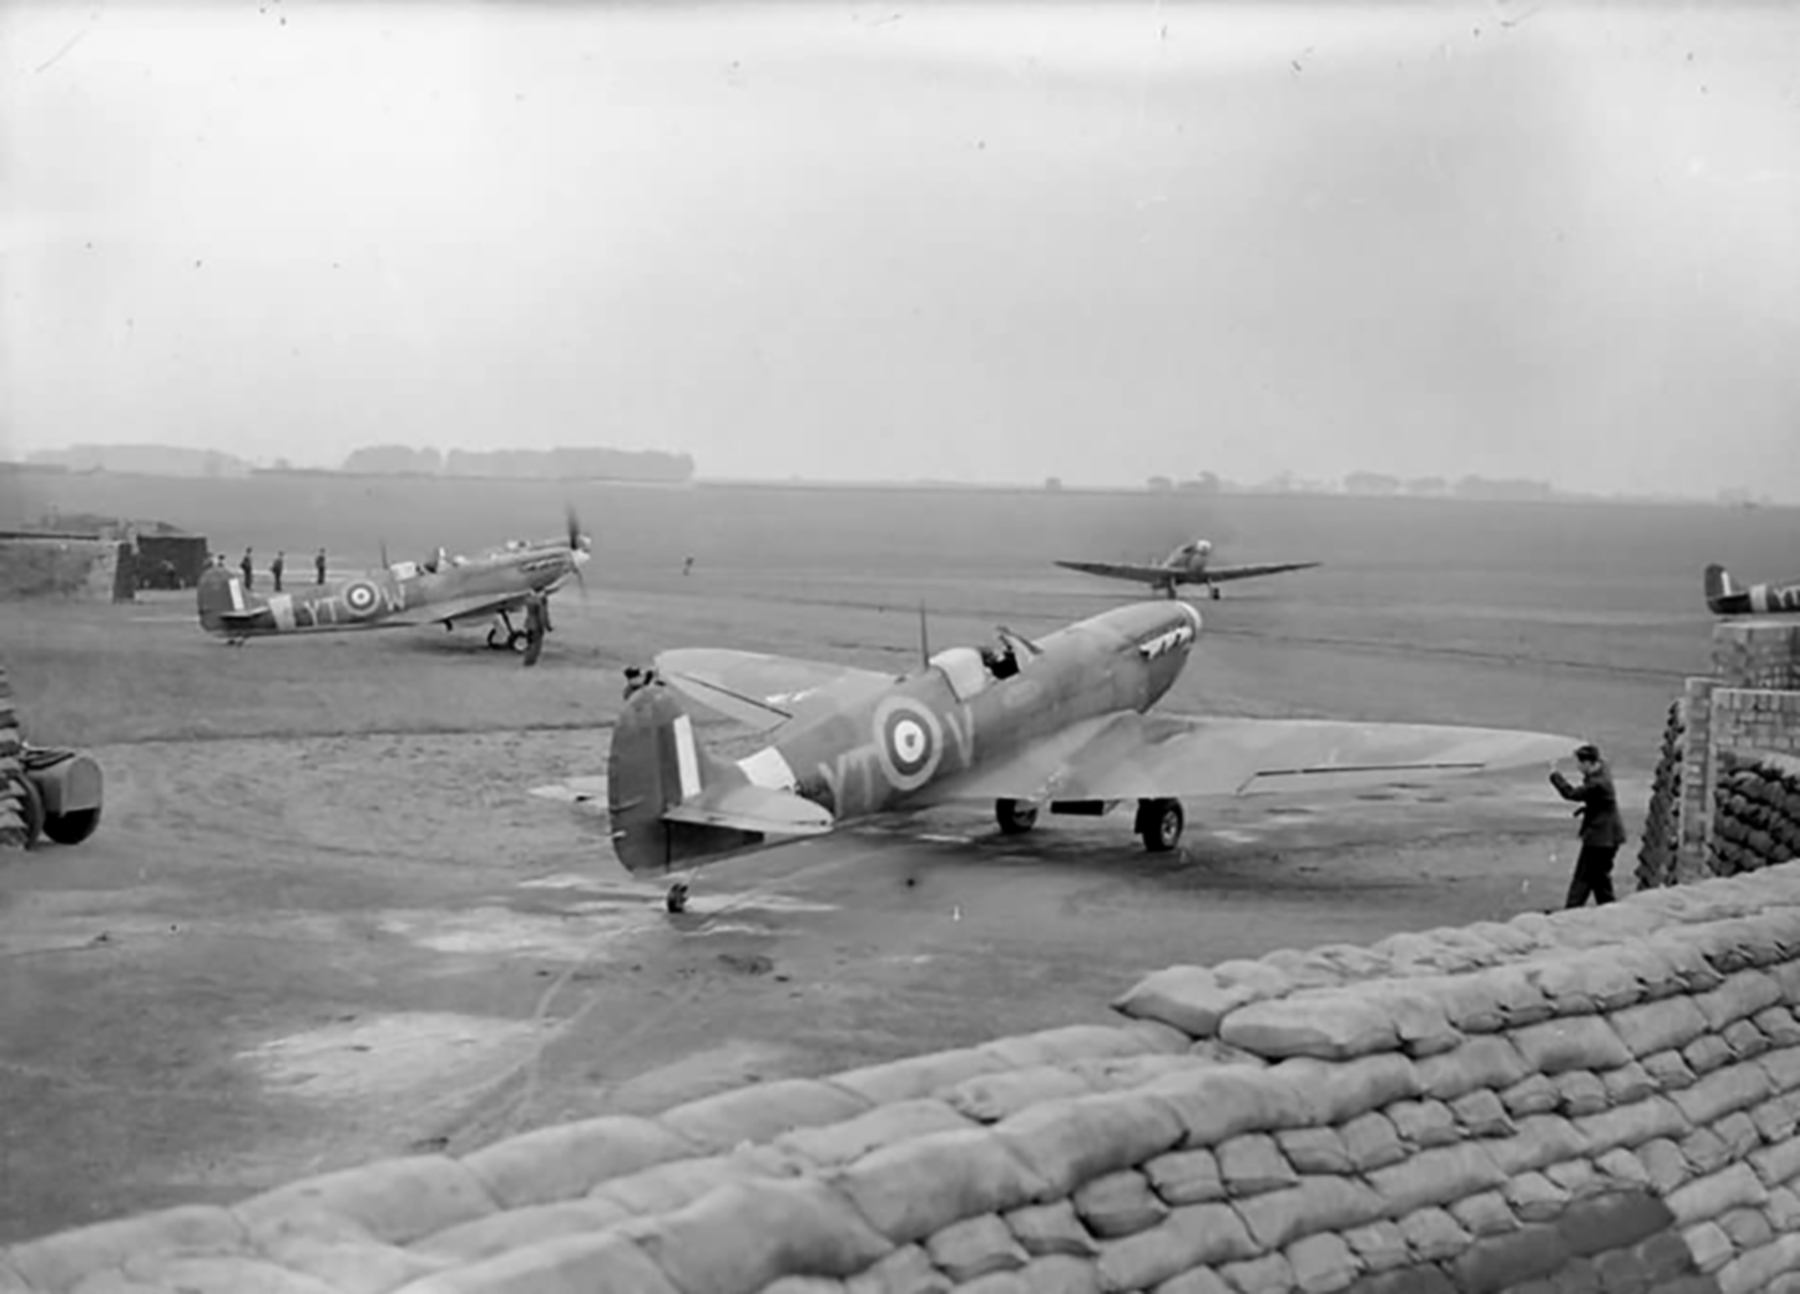 Spitfire MkIIa RAF 65Sqn YTV and YTW at Kirton in Lindsey England 1941 01